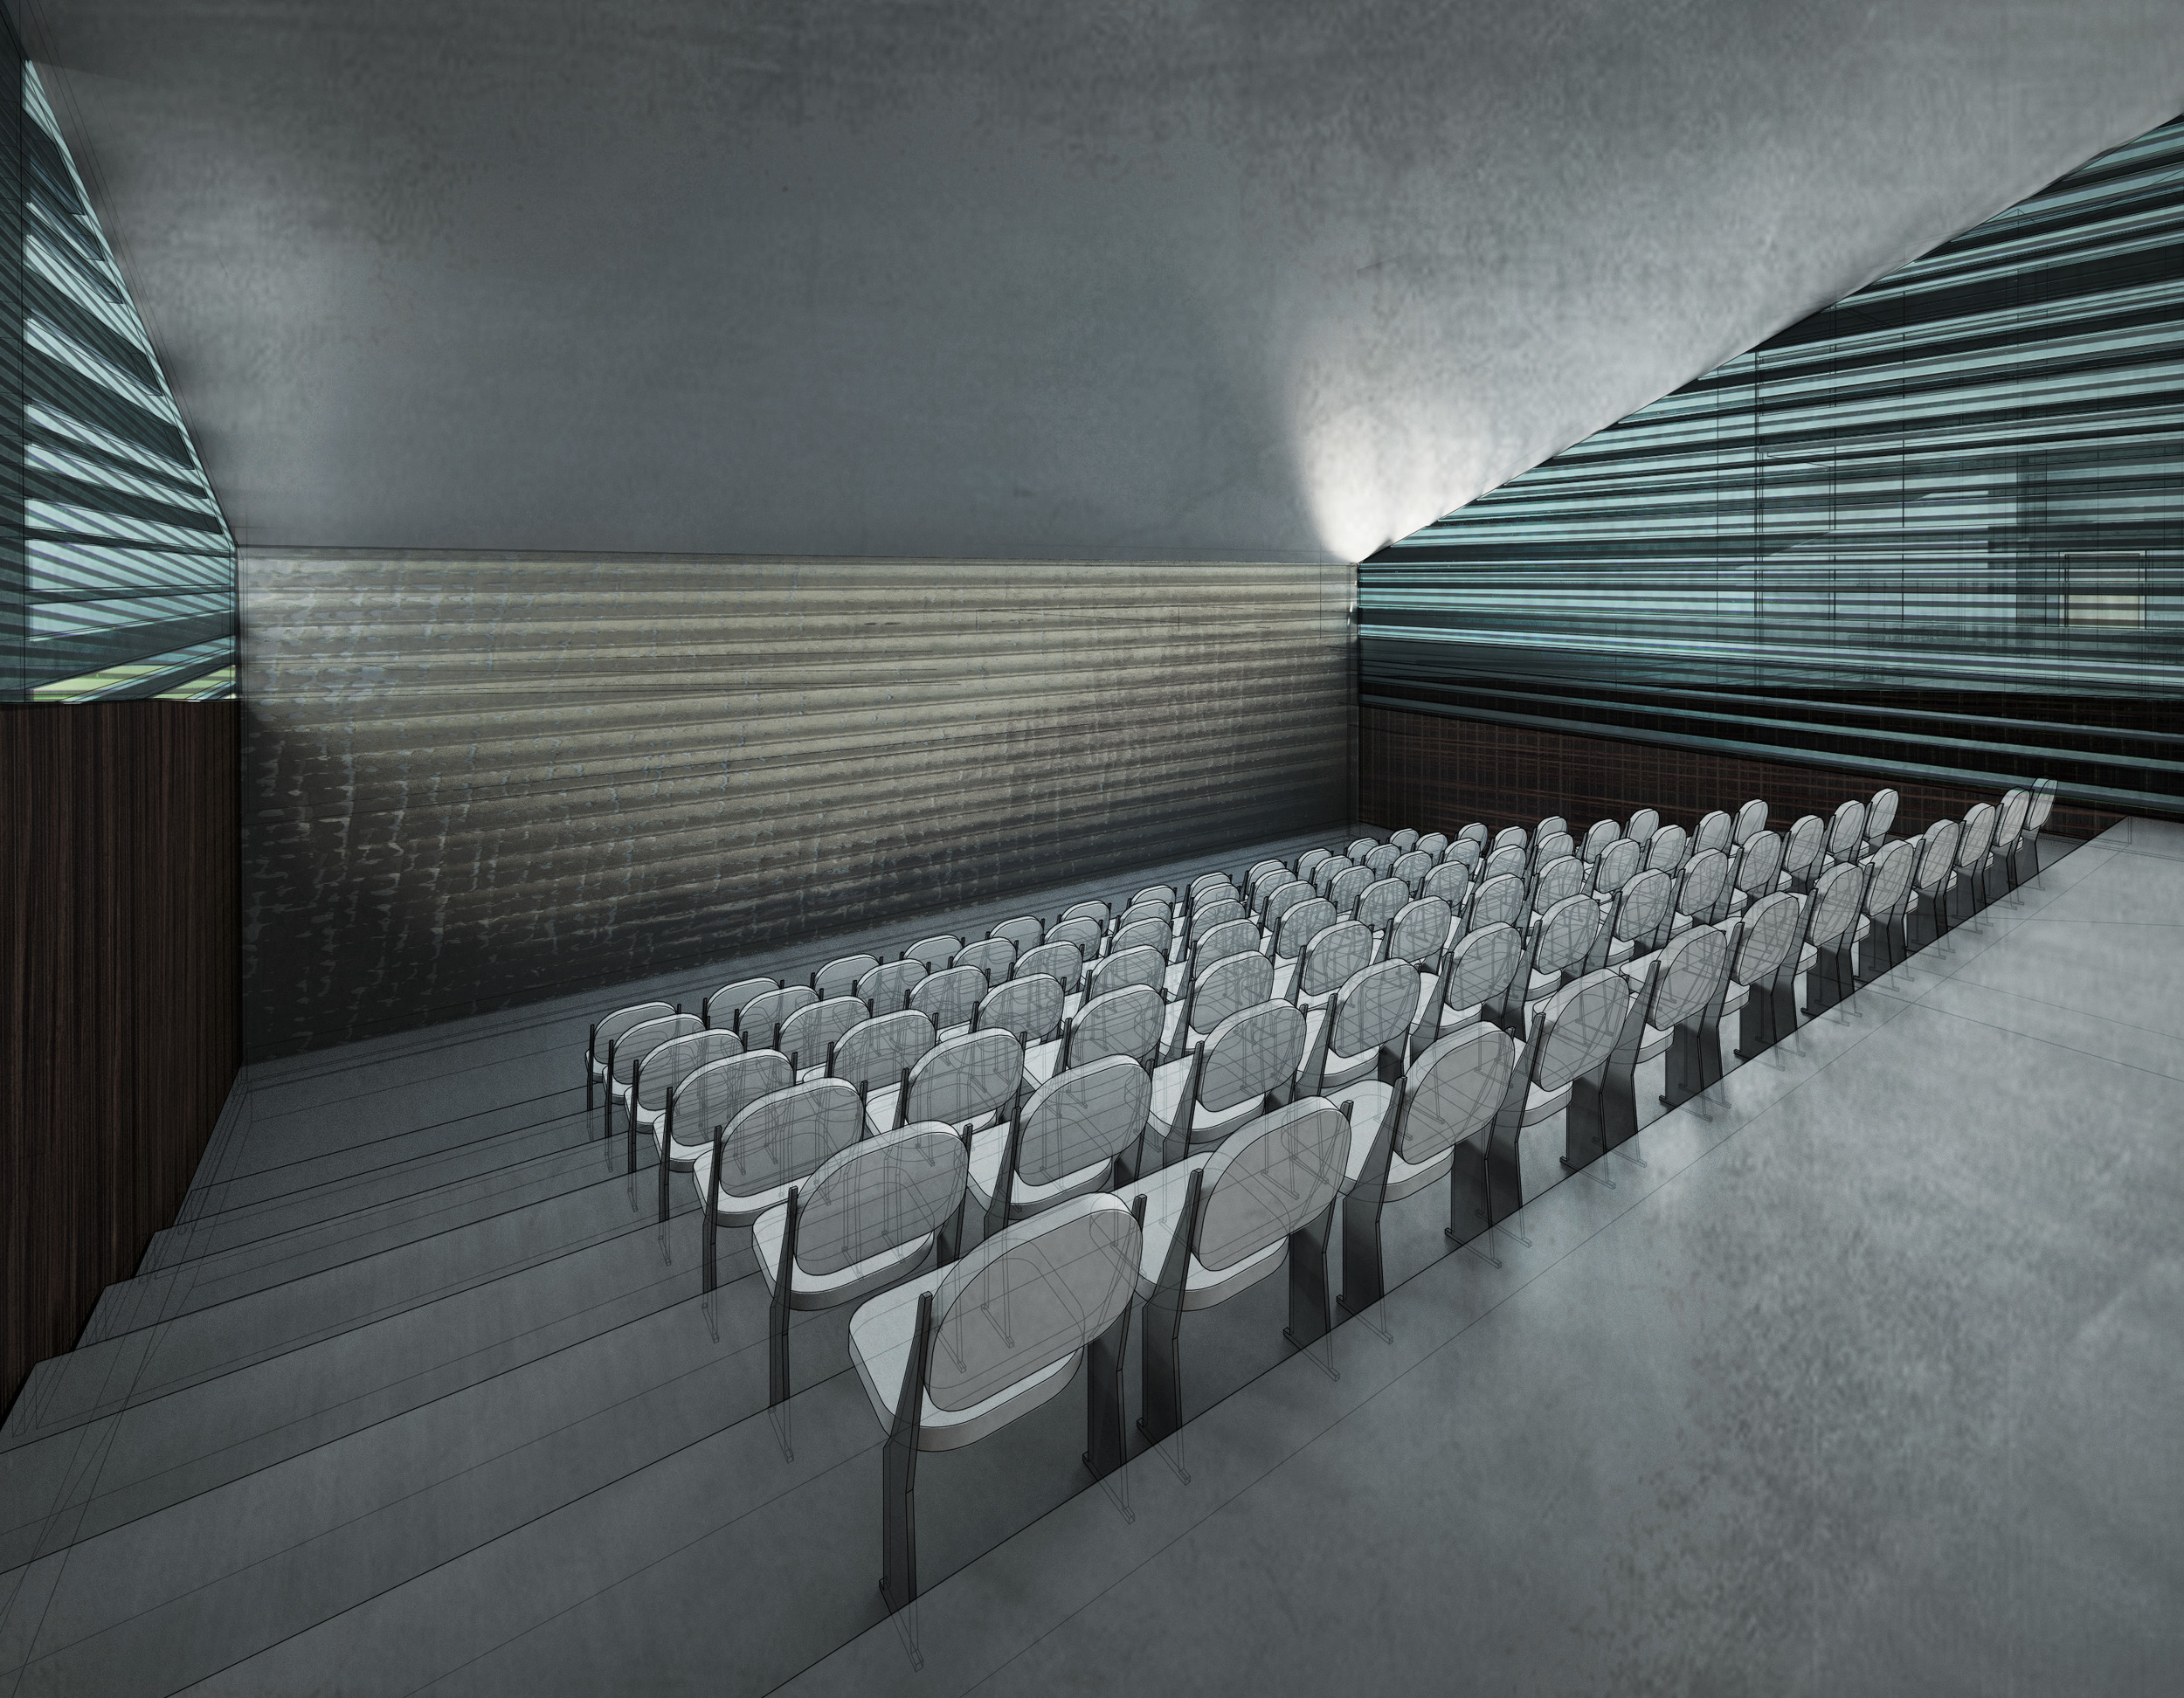 lecture hall_rendering_bw.jpg